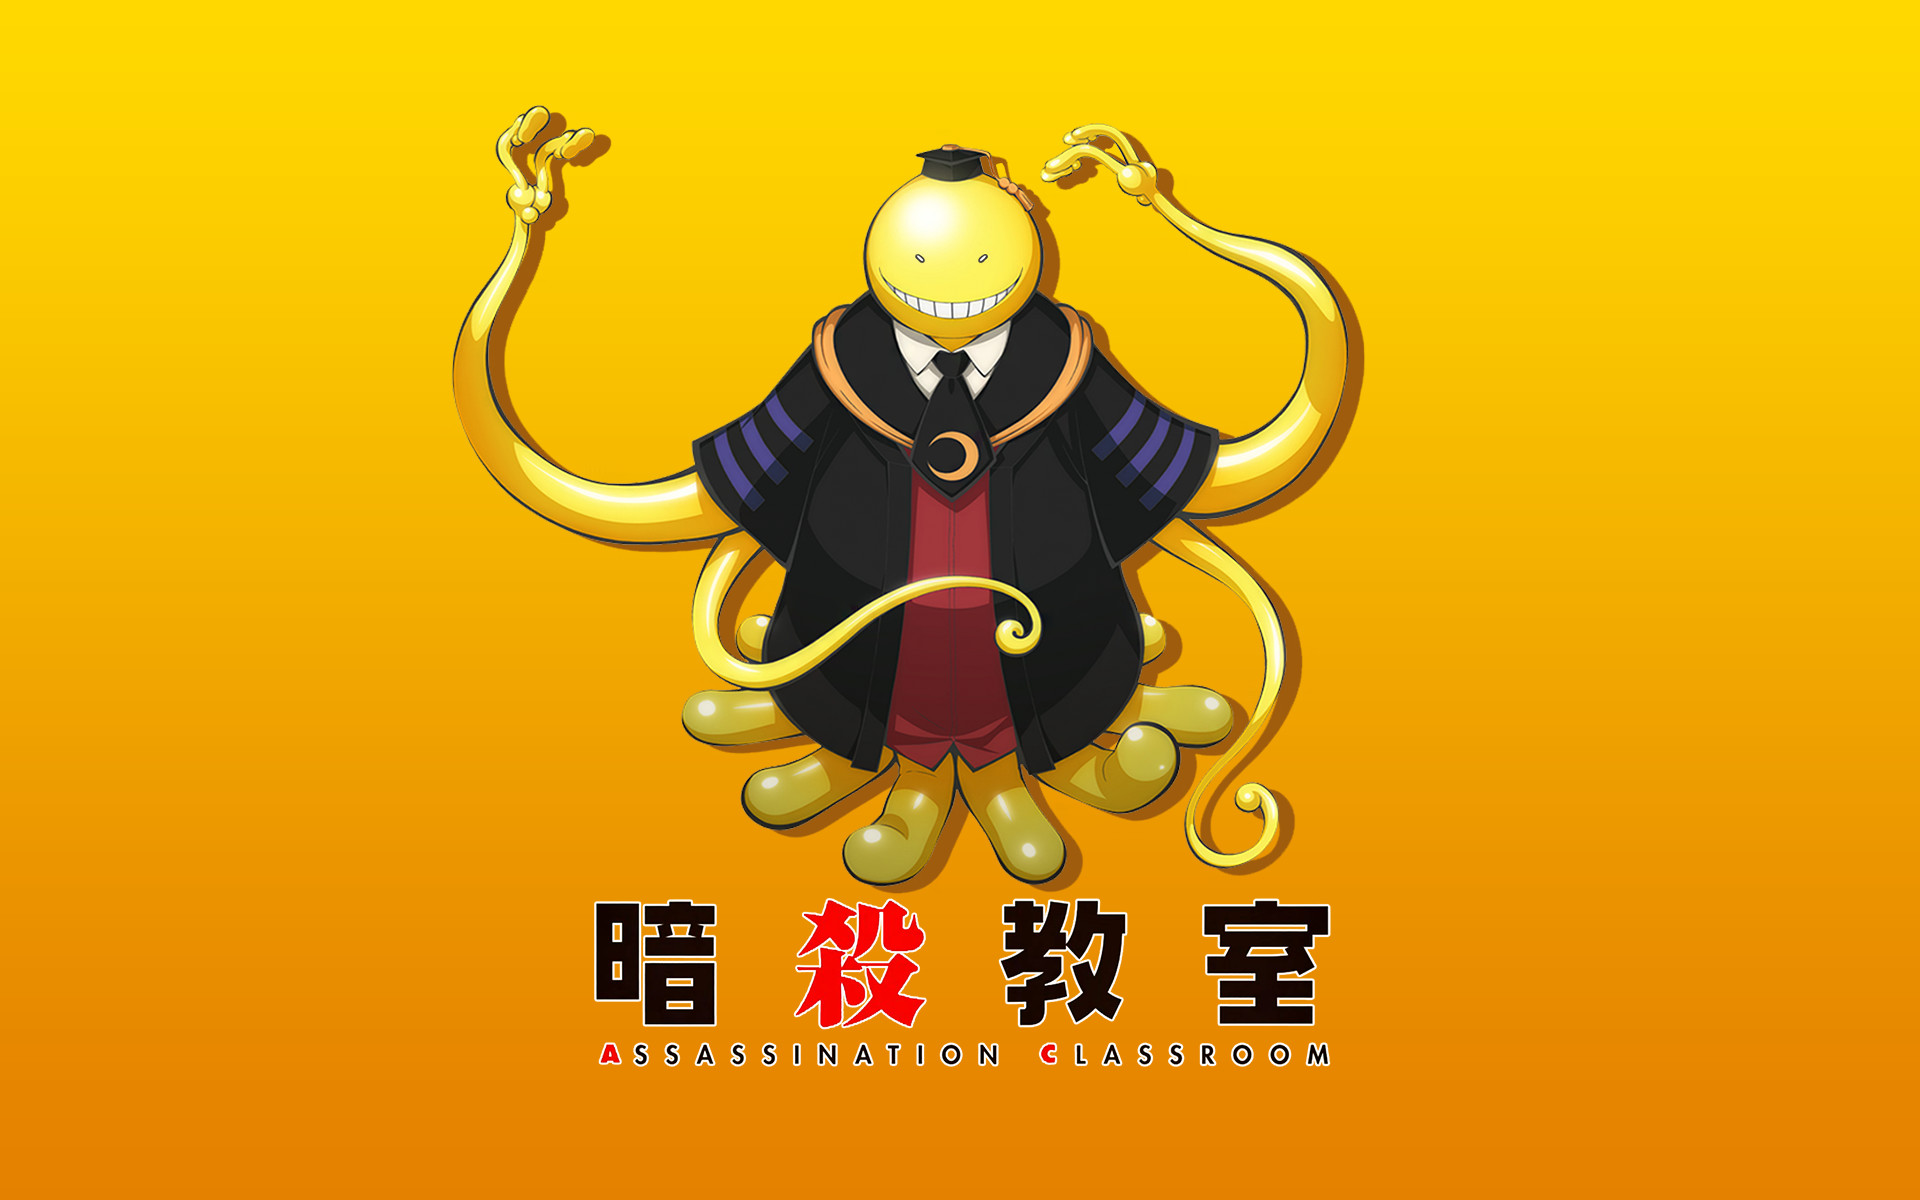 assassination classroom wallpapers 79 images